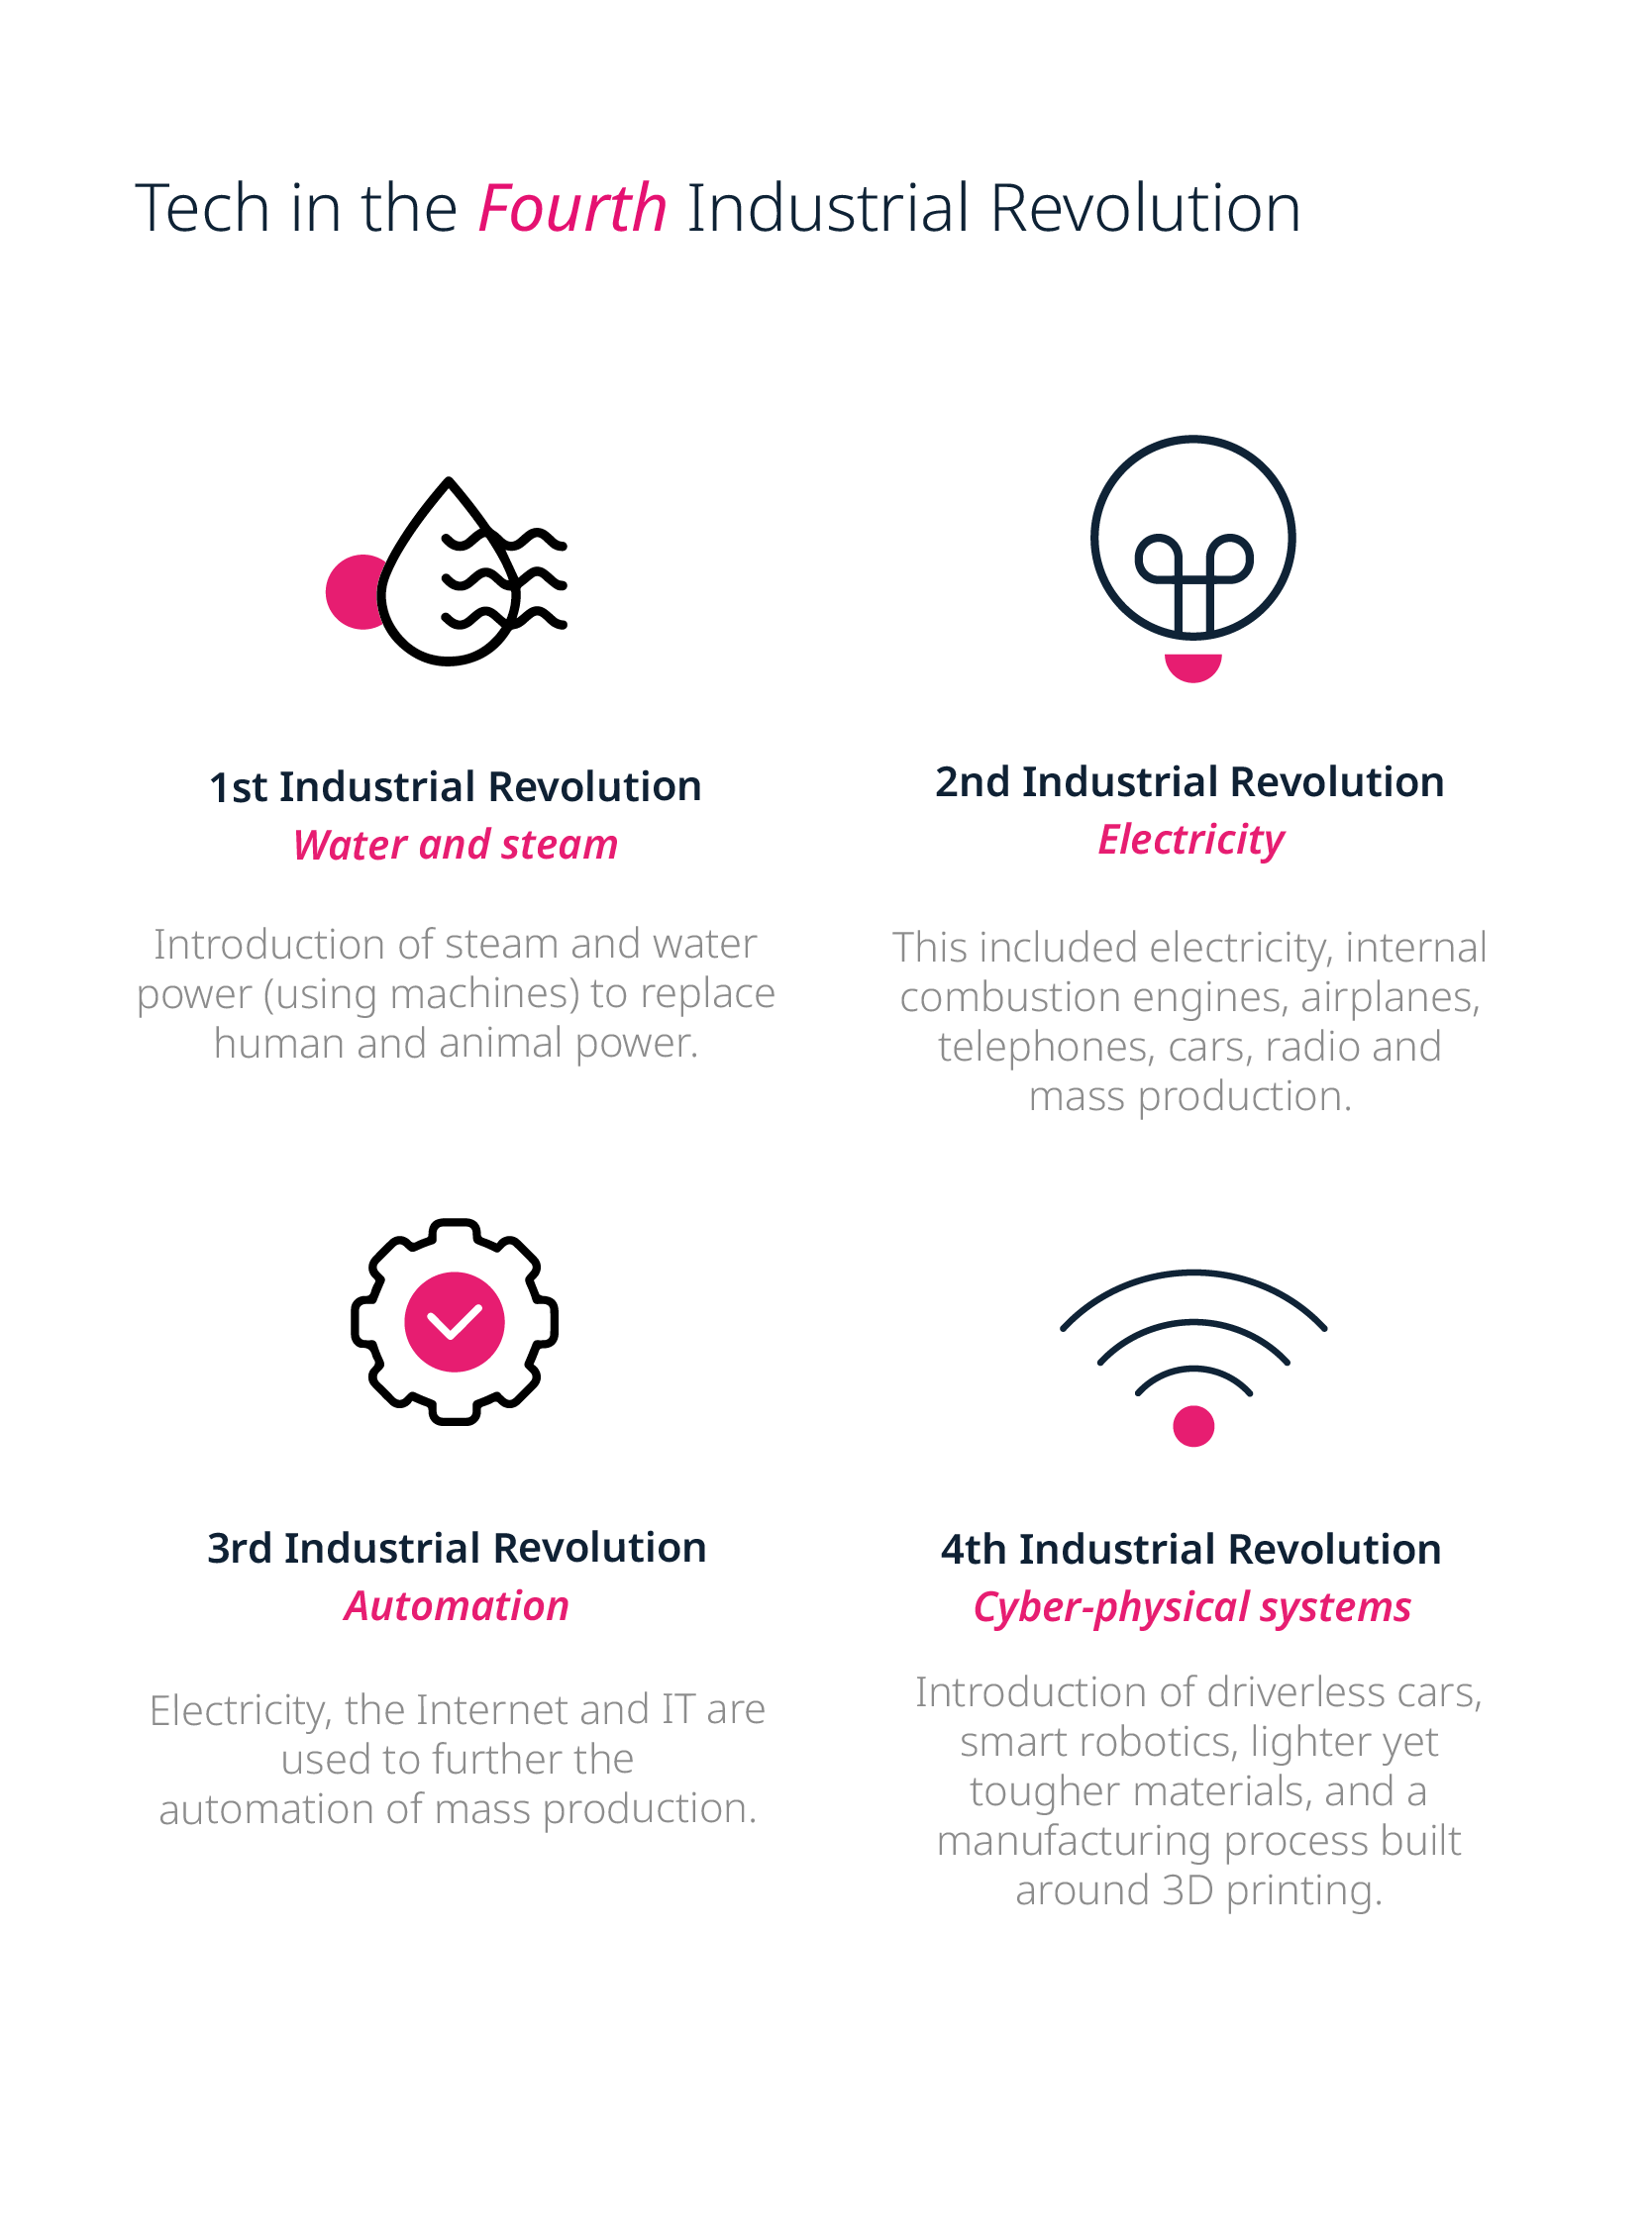 Technology in the fourth industrial revolution